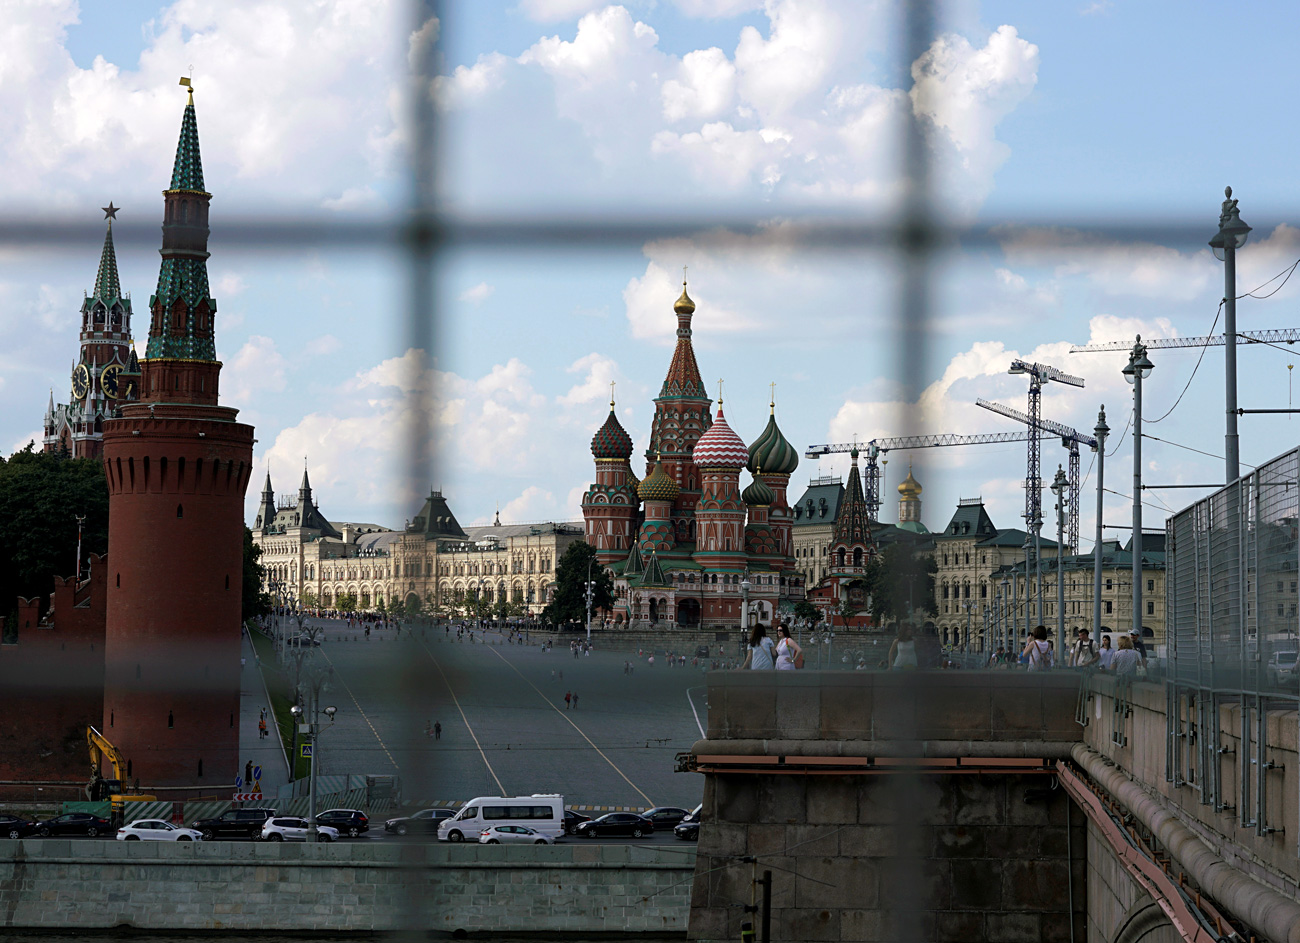 A view through a construction fence shows the Kremlin towers and St. Basil's Cathedral on a hot summer day in central Moscow, Russia, July 1, 2016.